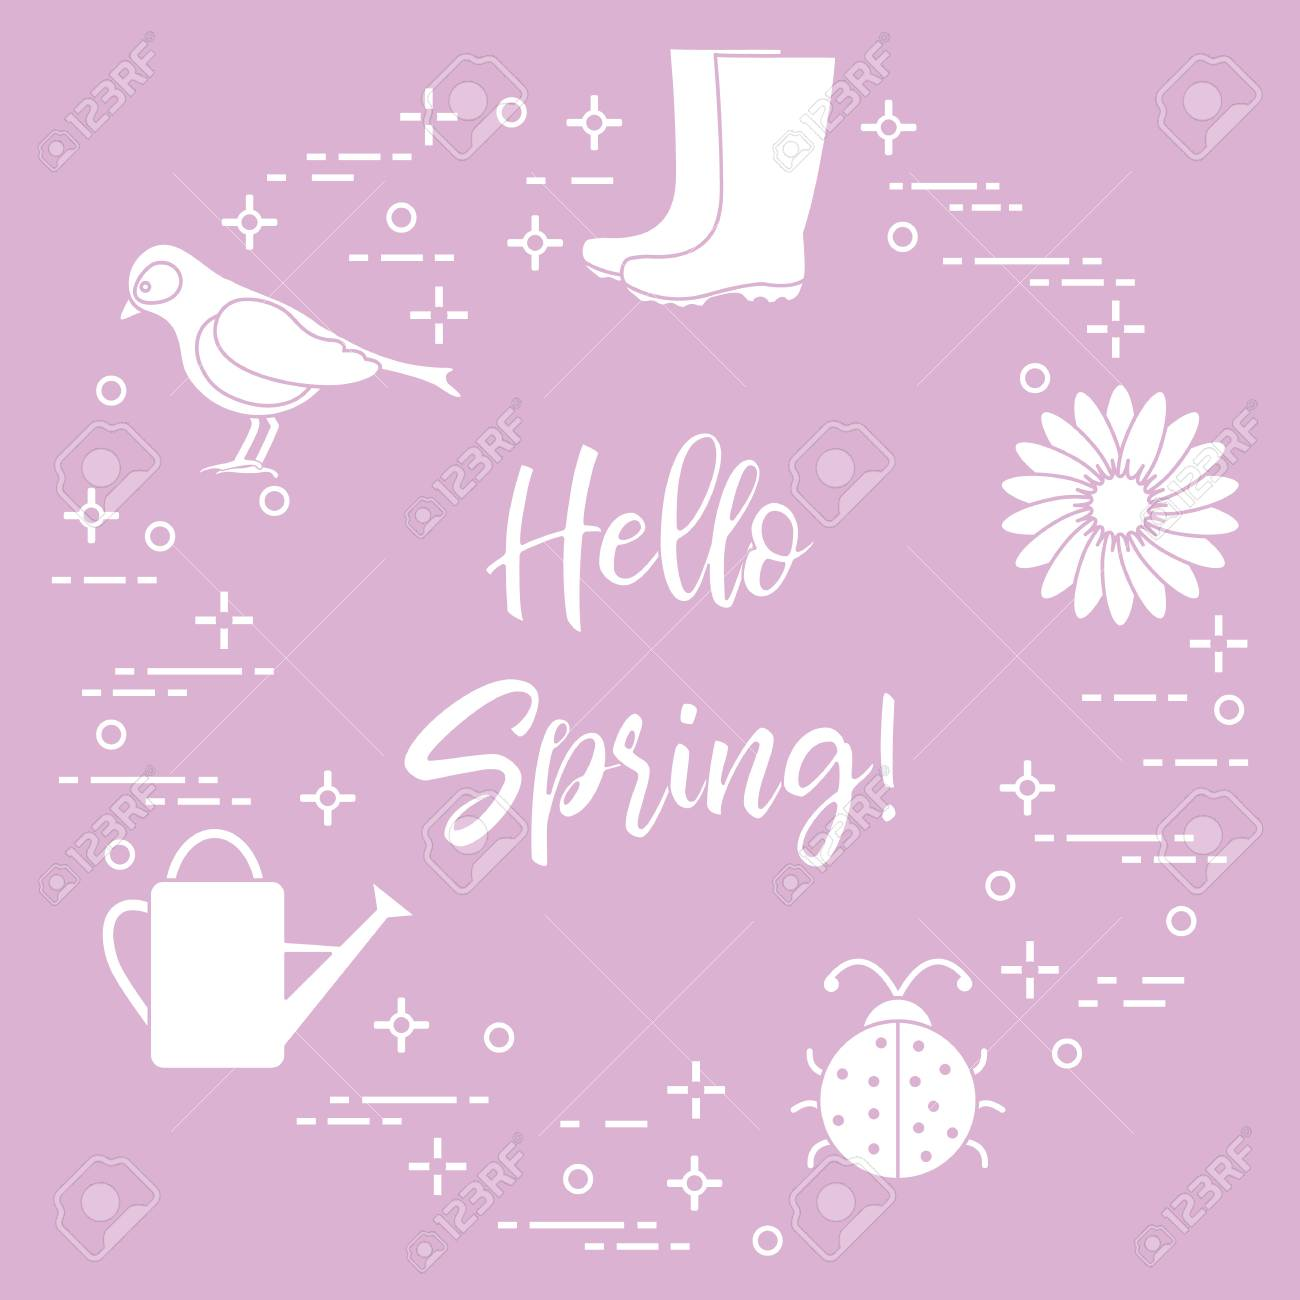 rubber boots bird flower watering can ladybug phrase hello